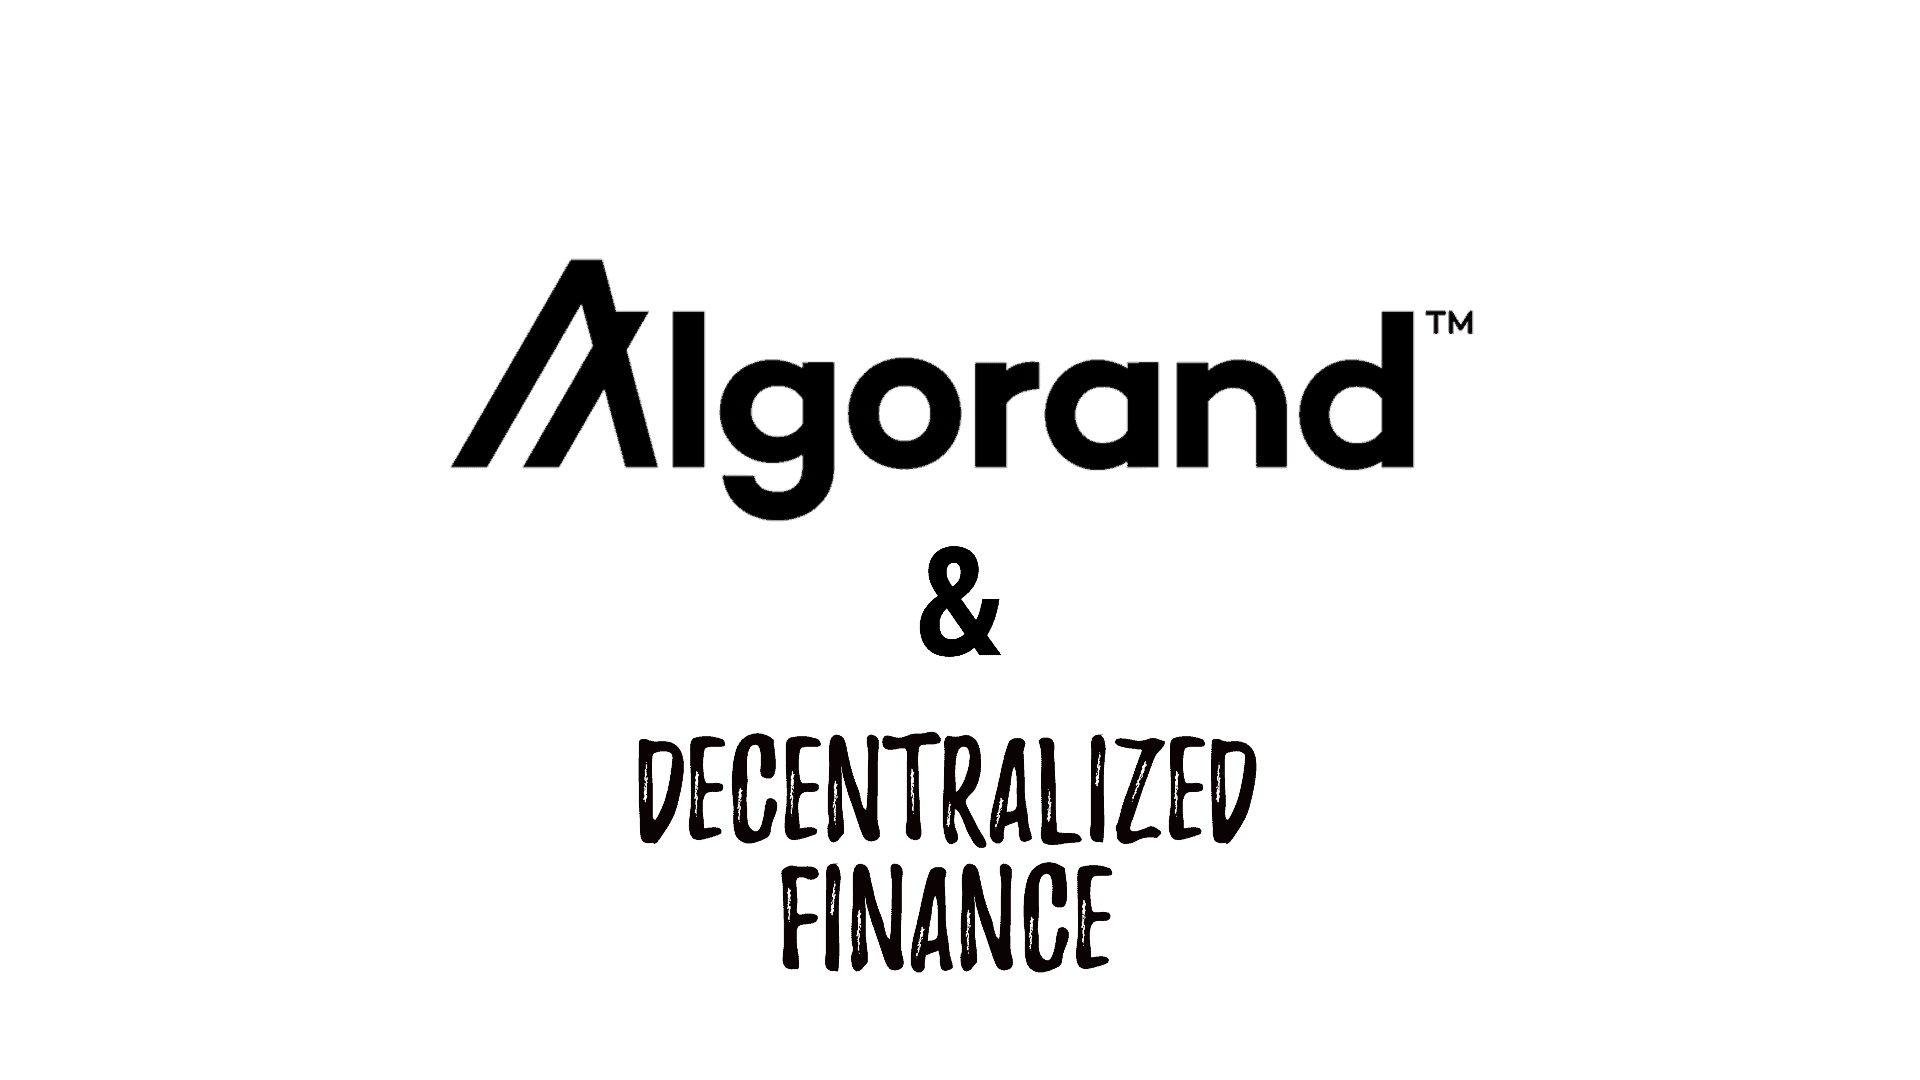 algorand decentralized finance